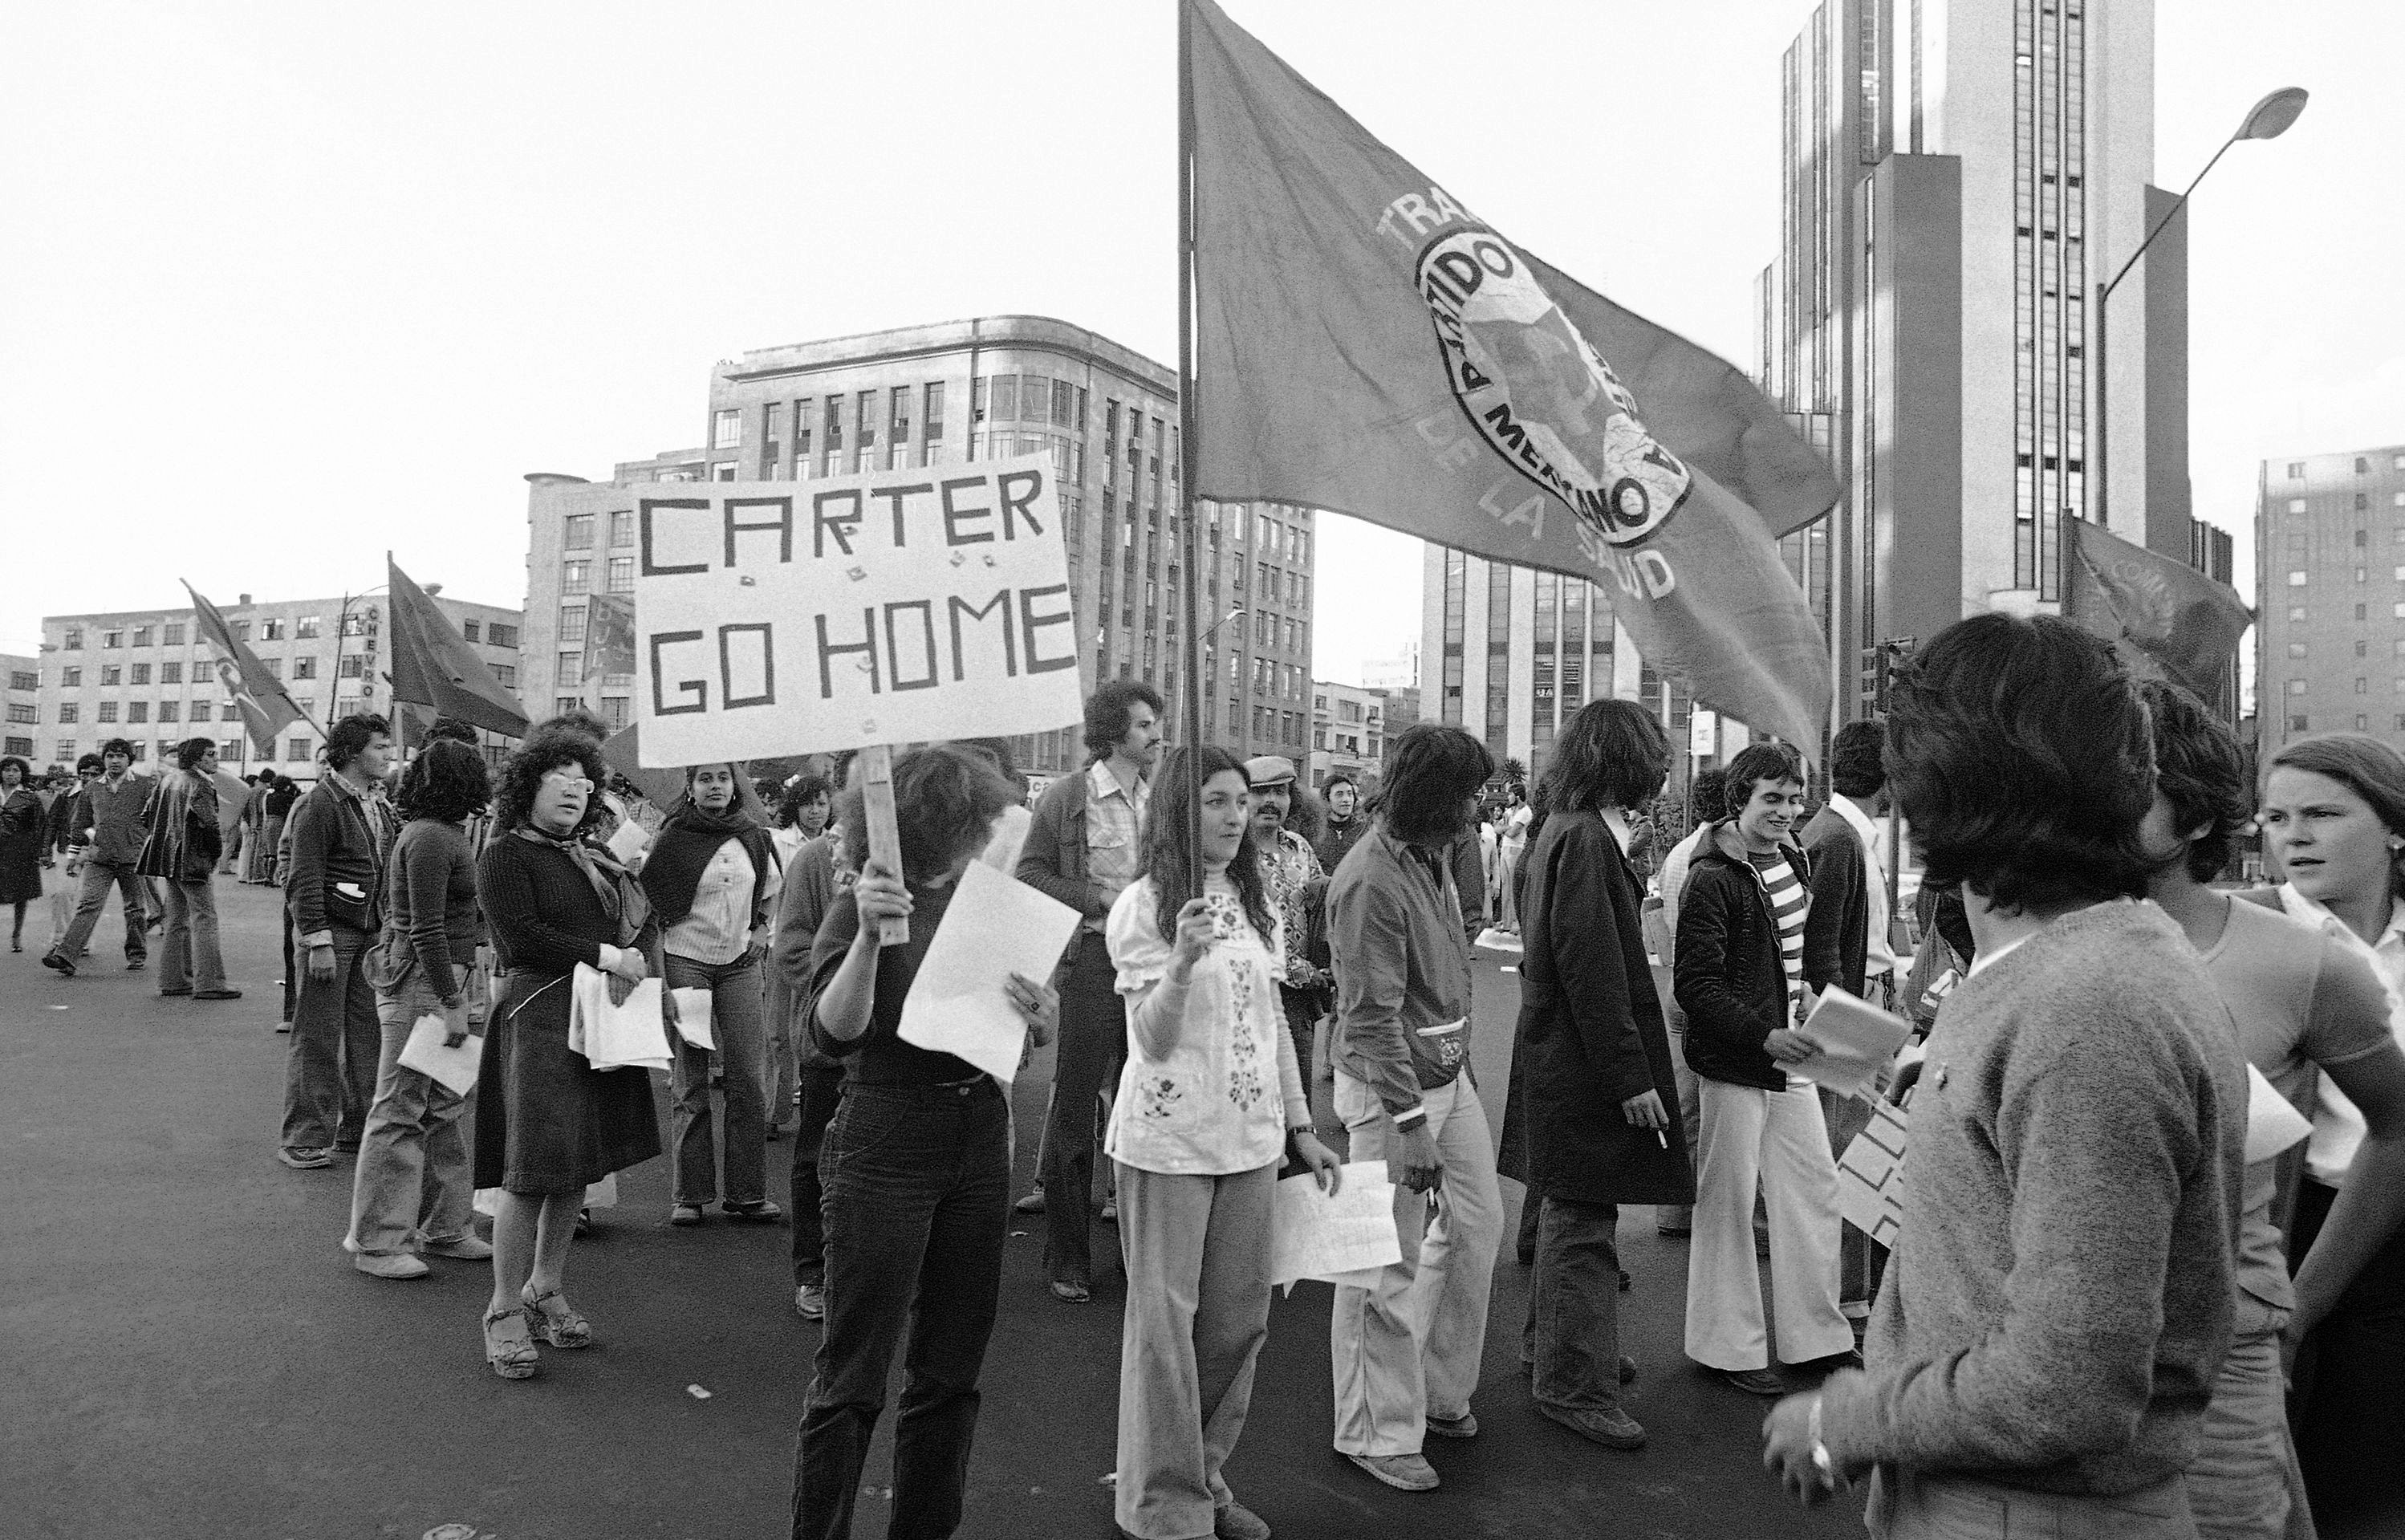 Members of Mexico?s Socialist Workers Party carry placard with anti-Carter slogan in Mexico City, Feb. 7, 1979. March was called by telephone workers protesting for higher wages, but they were joined by 15 to 20 other organizations which focused on Carter?s upcoming visit to Mexico Feb. 14 to 16. Police estimated 5,000 persons took part in the demonstration. (AP Photo/Valente Cotera)